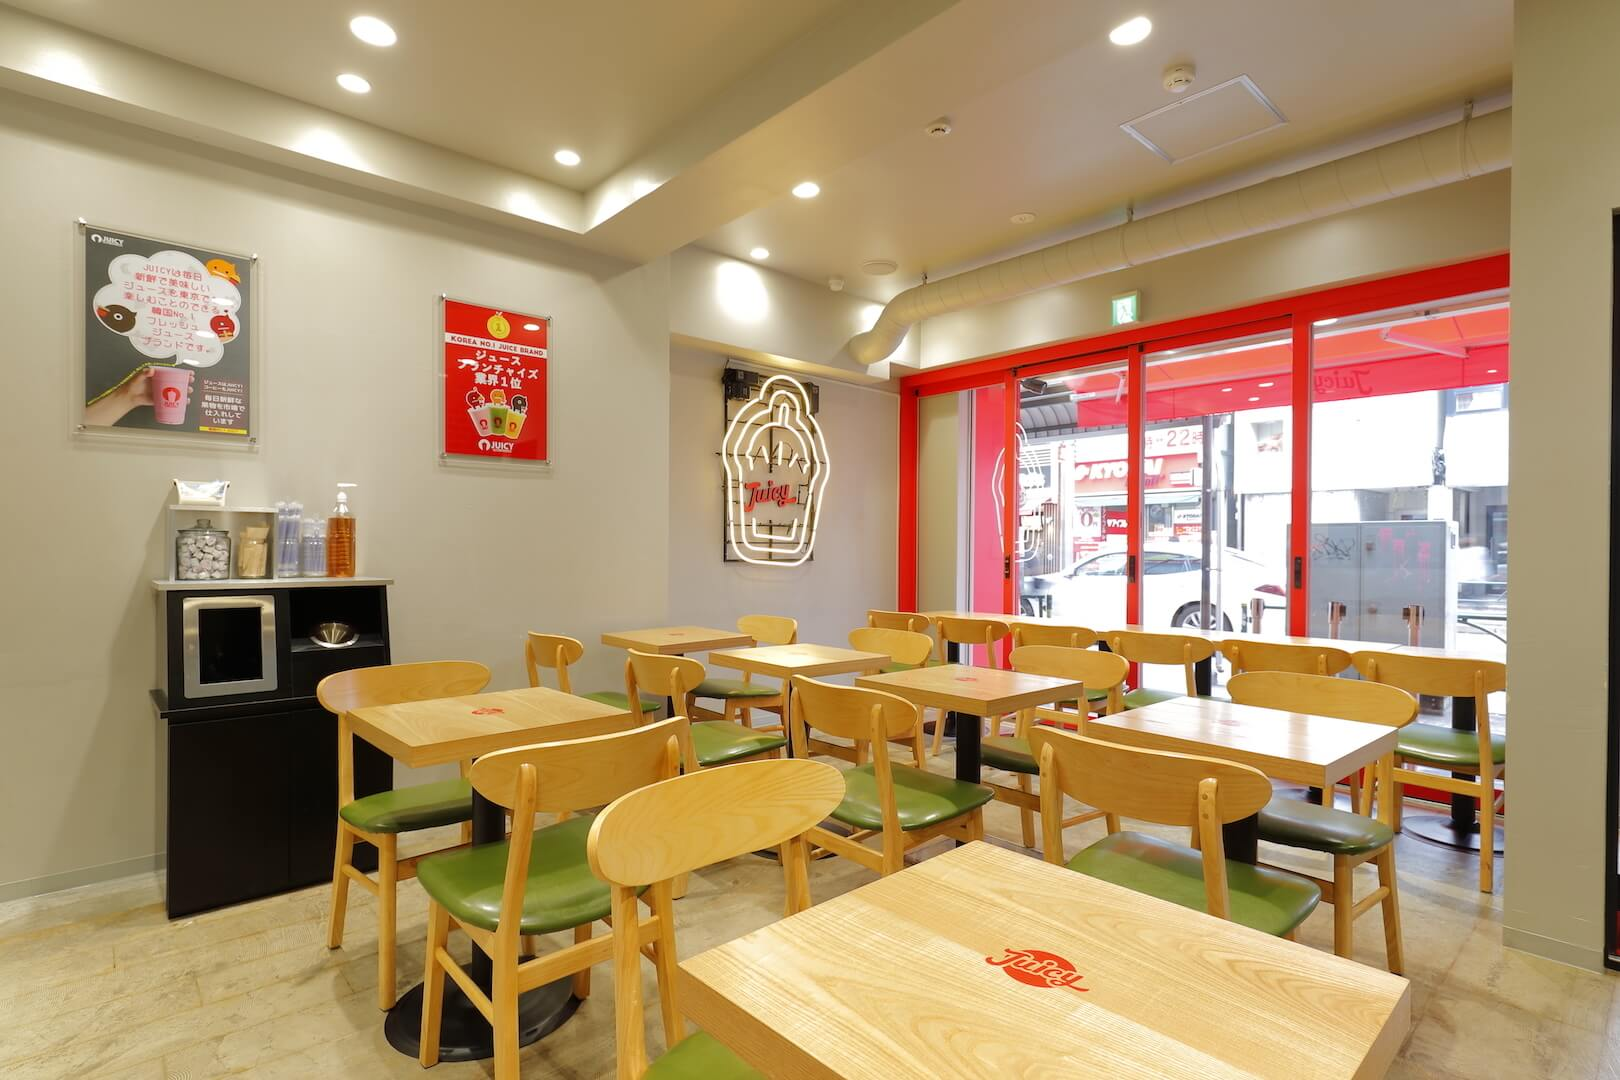 Harajuku S New Bubble Tea Shop Chakasho Review Moshi Moshi Nippon もしもしにっぽん